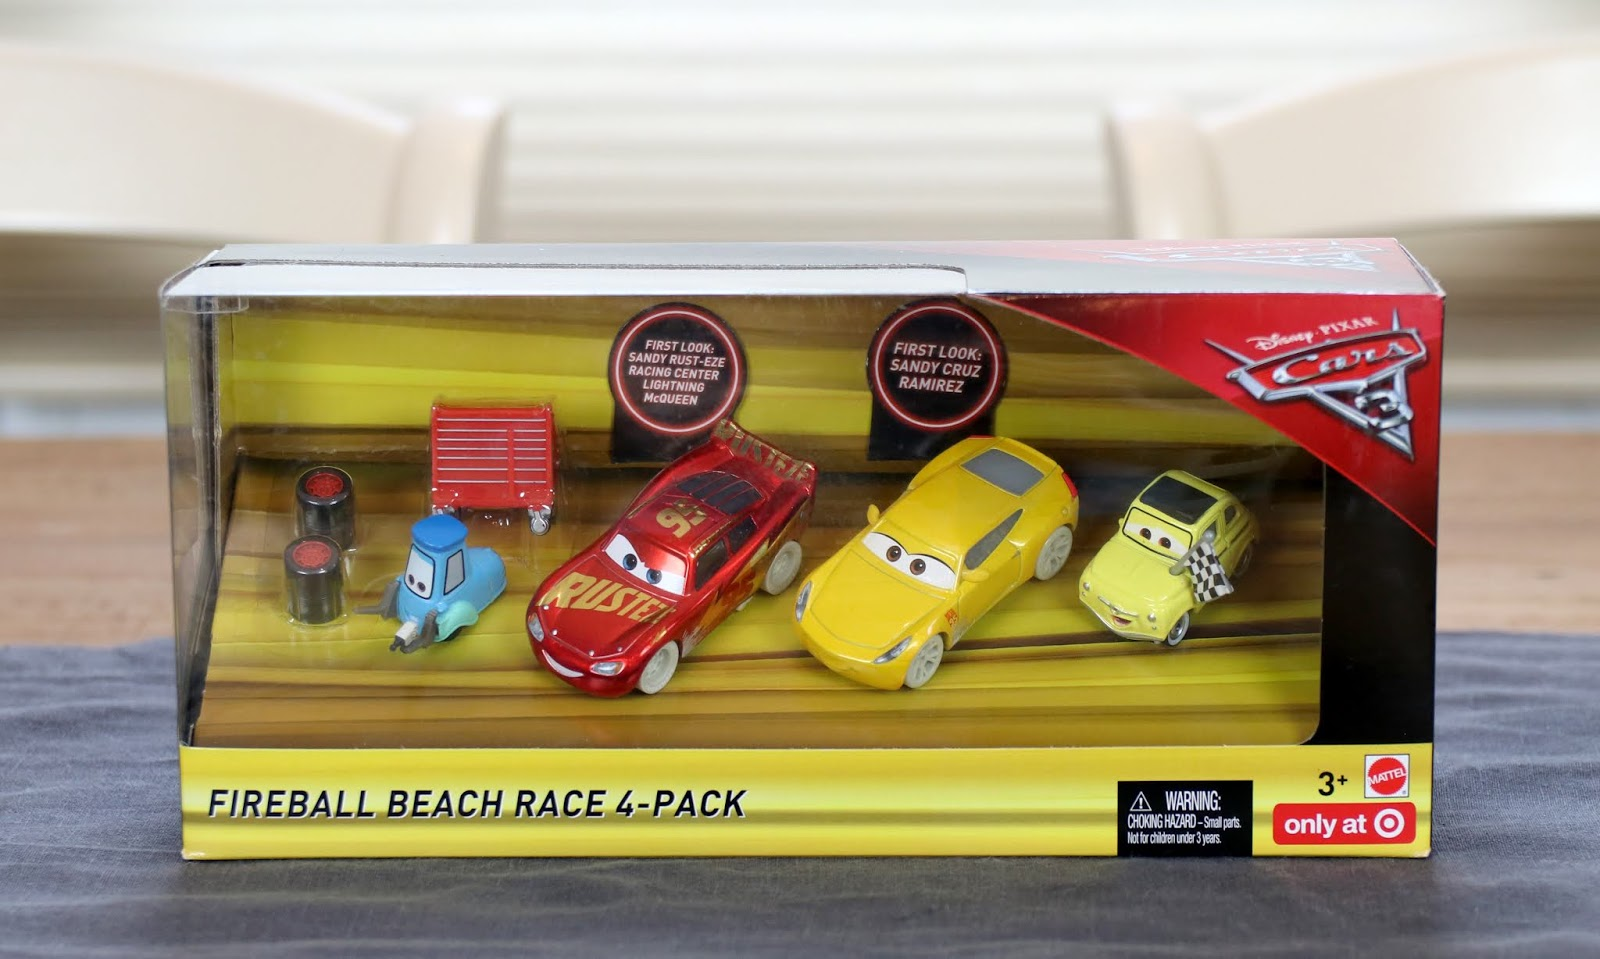 Cars 3 Fireball Beach Race 4-Pack (Target Exclusive)